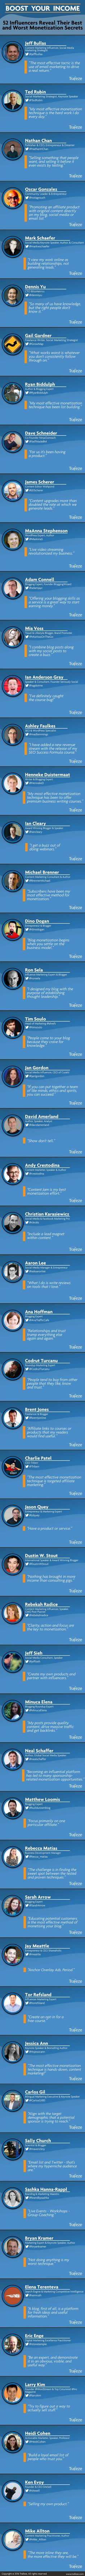 Learn what 52 incredibly successful online entrepreneurs have to say about monetization, including what their BEST and WORST experiences have been!   https://blog.trafeze.com/2016/11/15/boost-income-52-influencers-reveal-best-worst-monetization-secrets/ via /trafeze/ #onlinebusiness #entrepreneur #followback